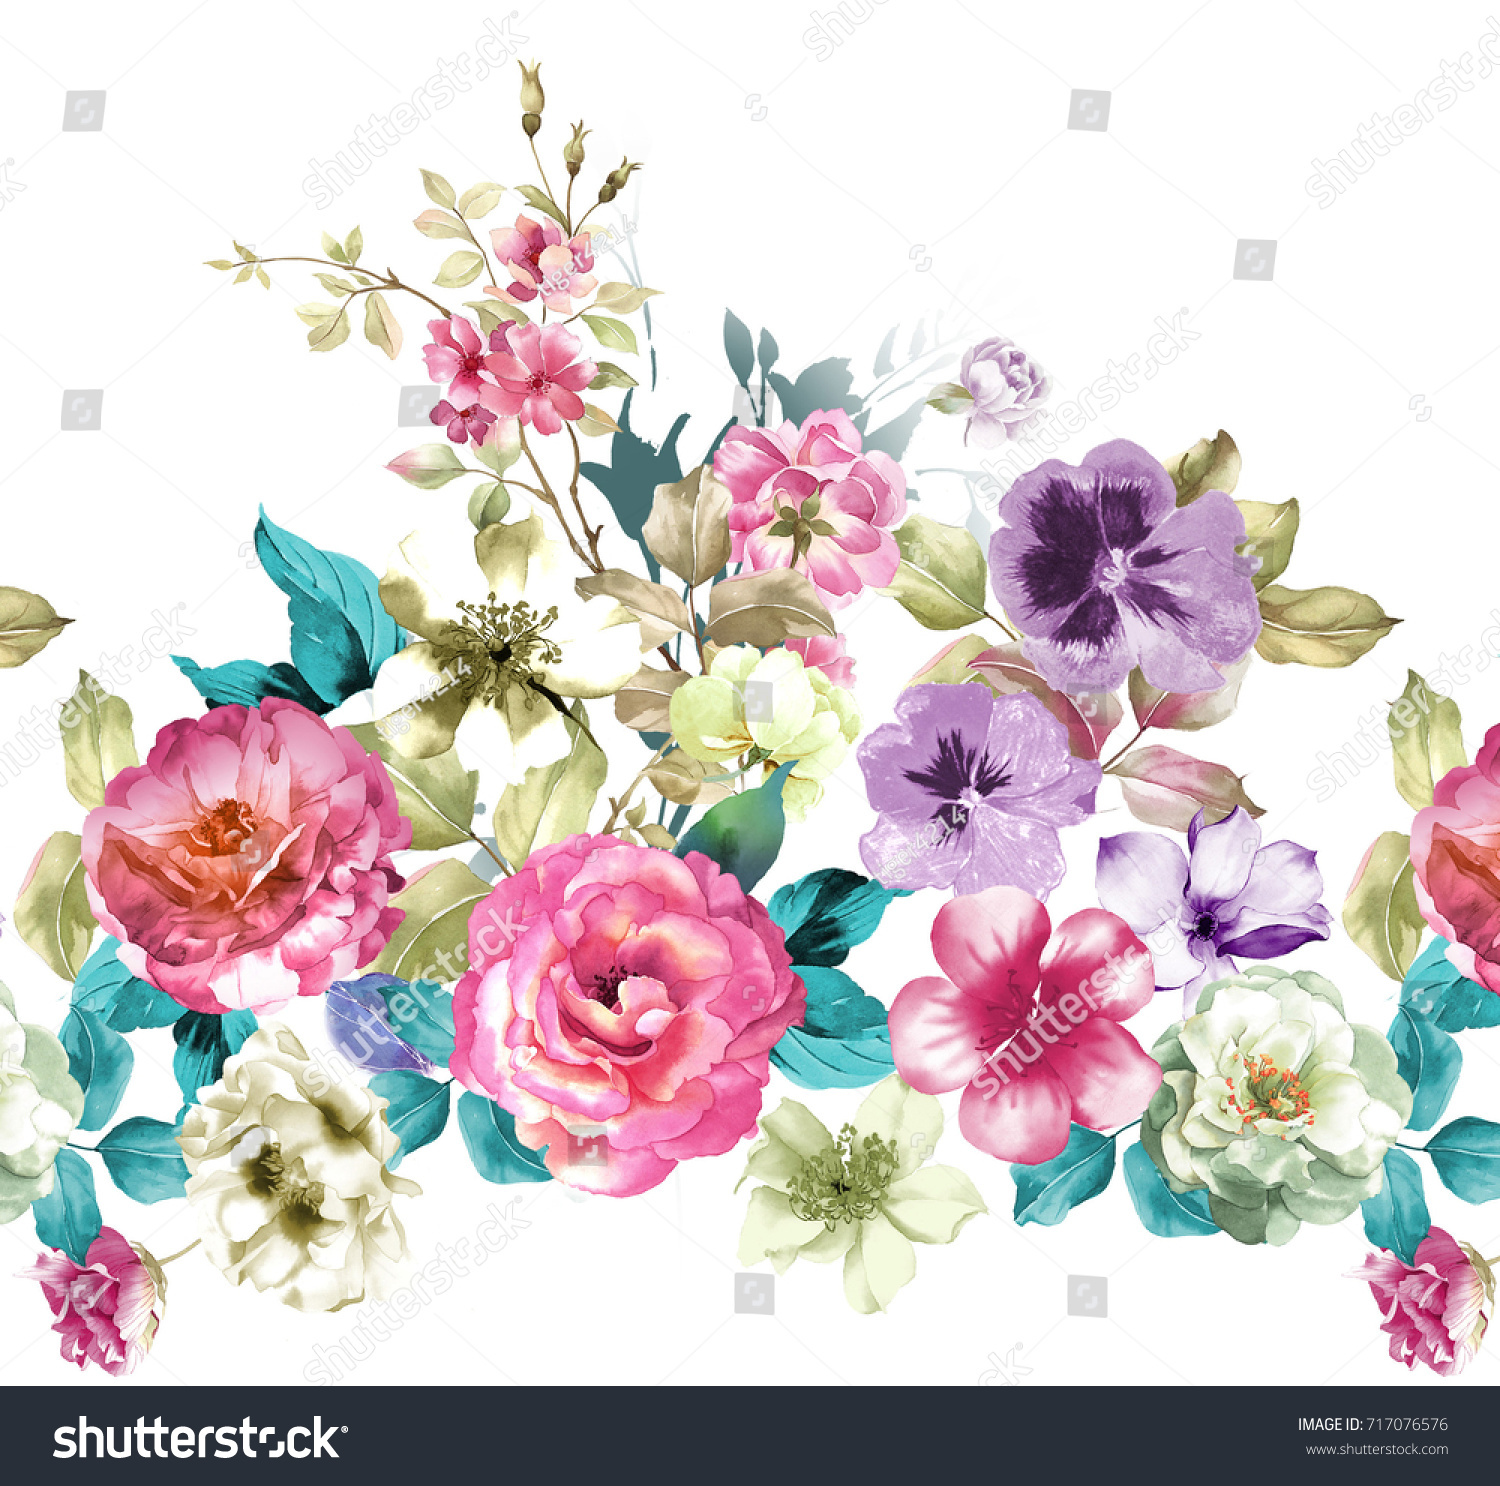 Graceful flowers the leaves and flowers art design